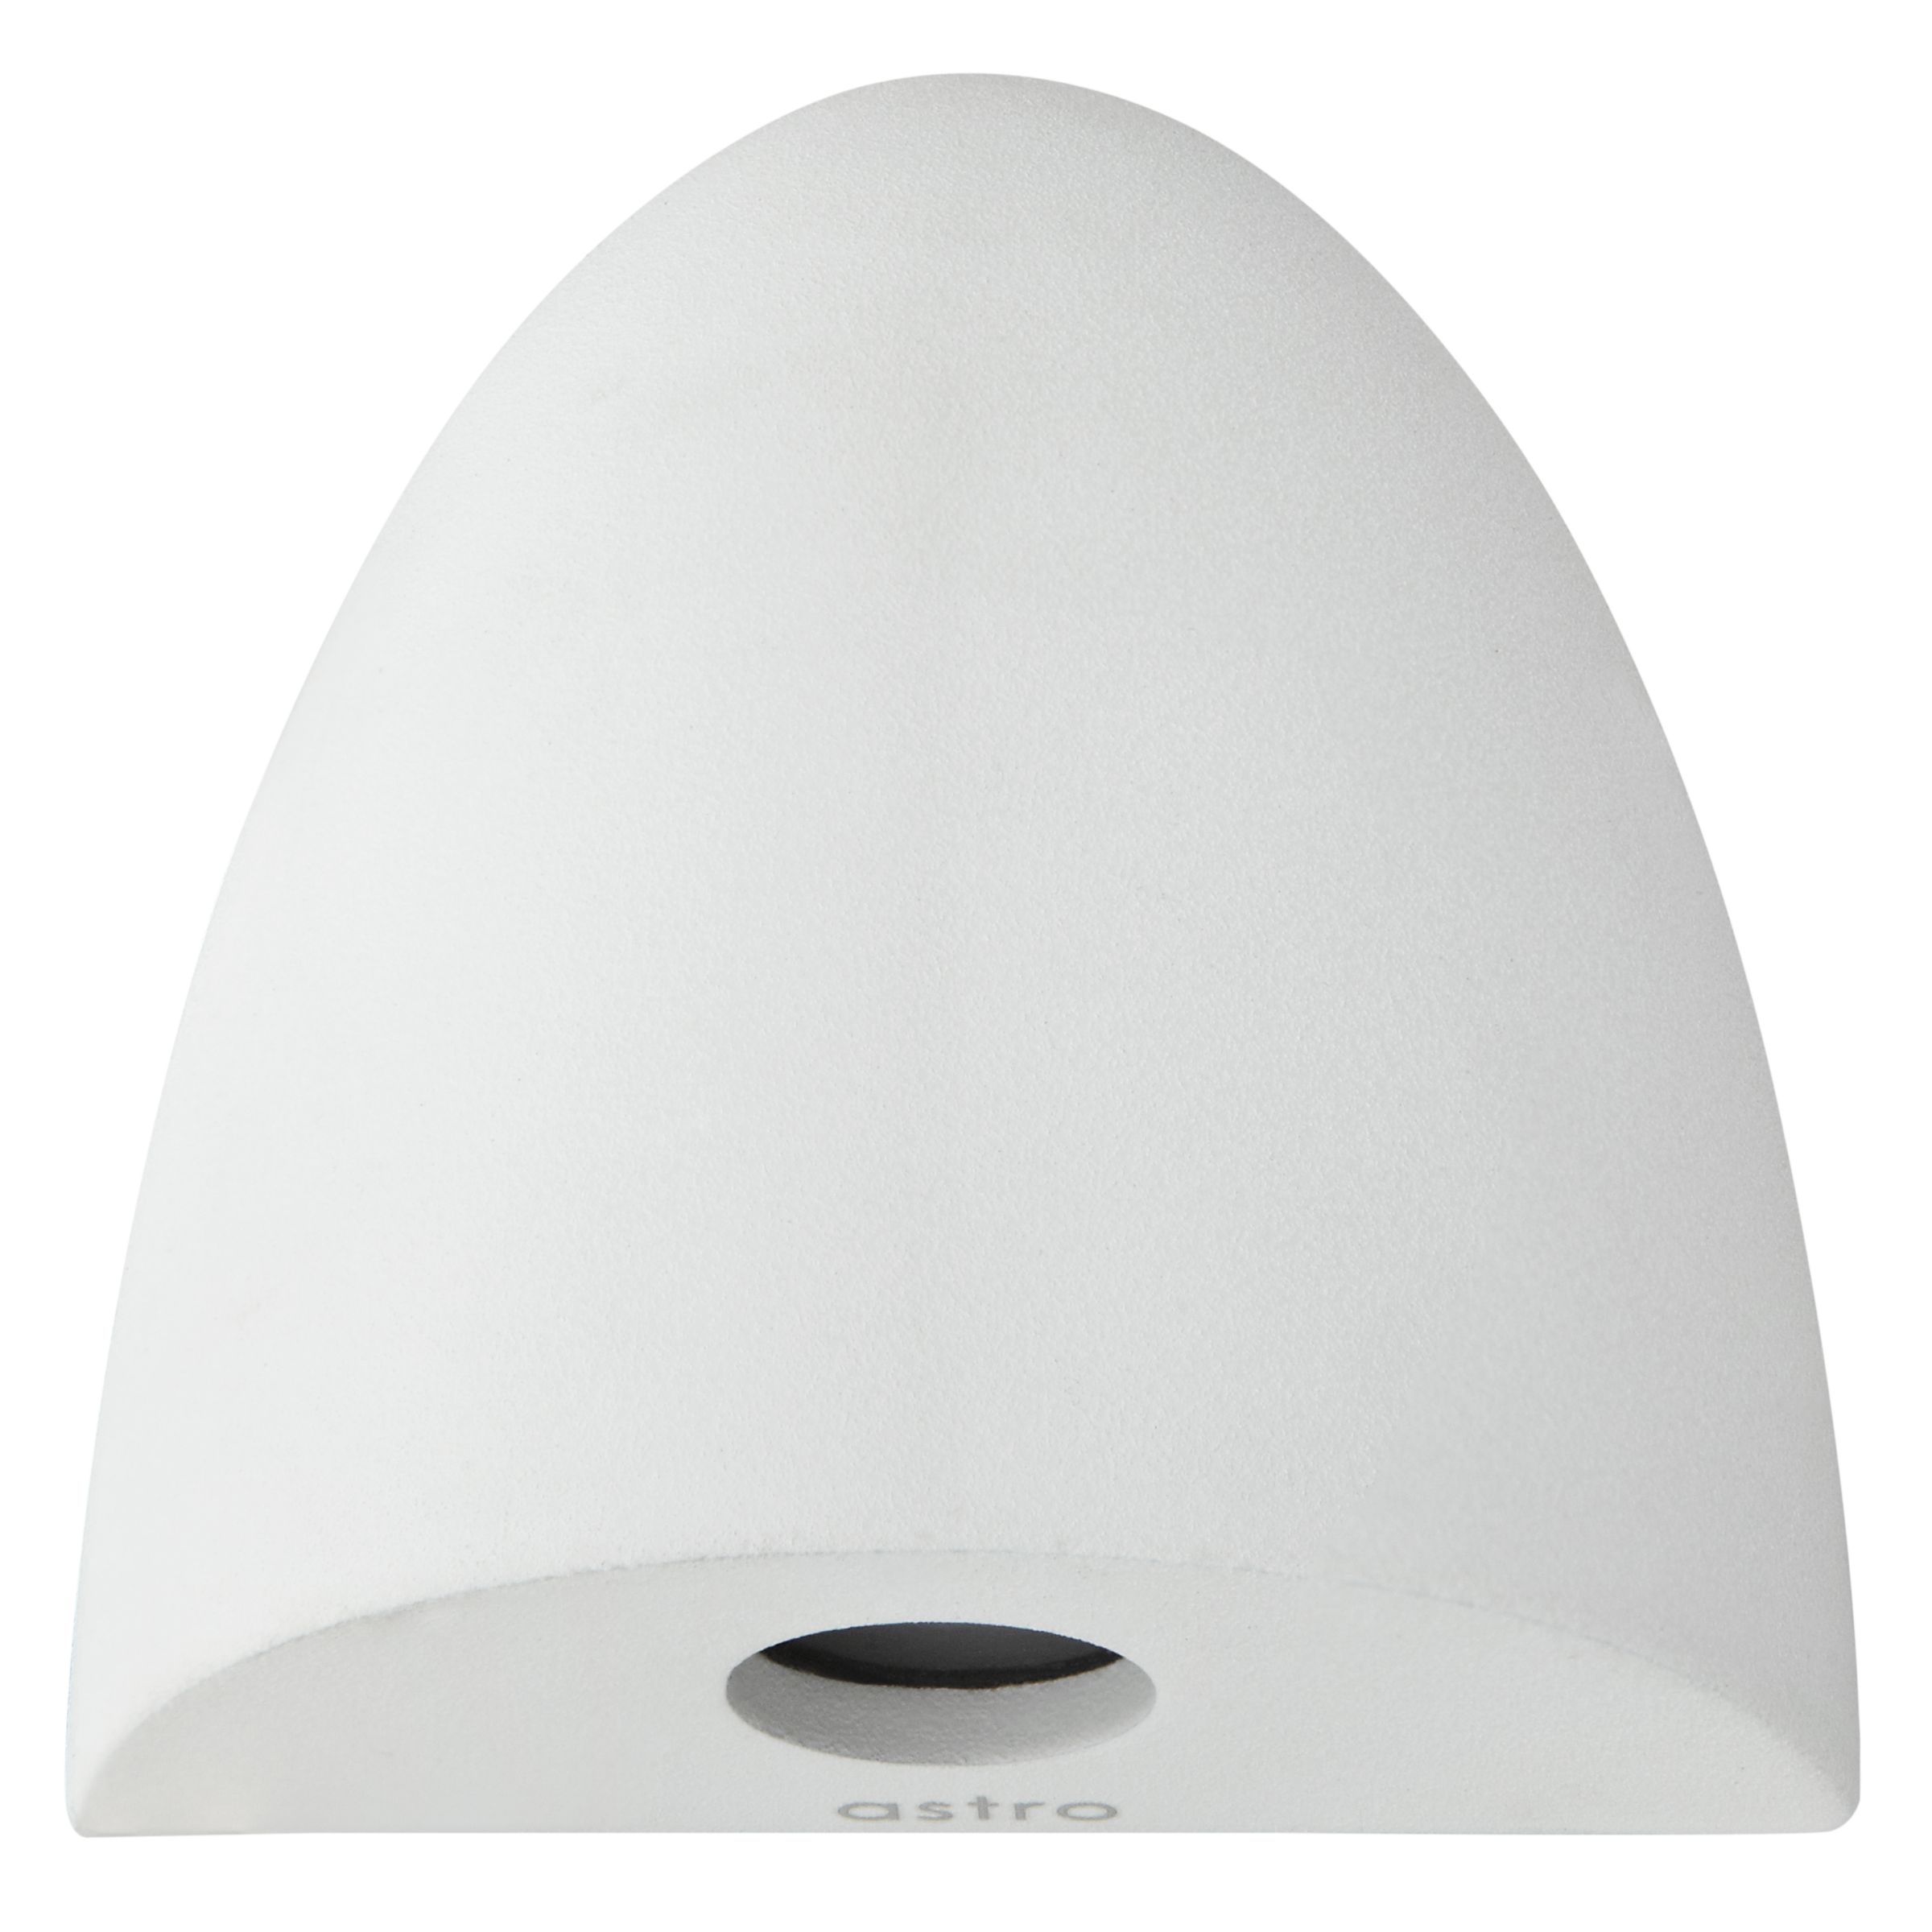 Buy ASTRO Orpheus LED Curved Wall Light, White John Lewis